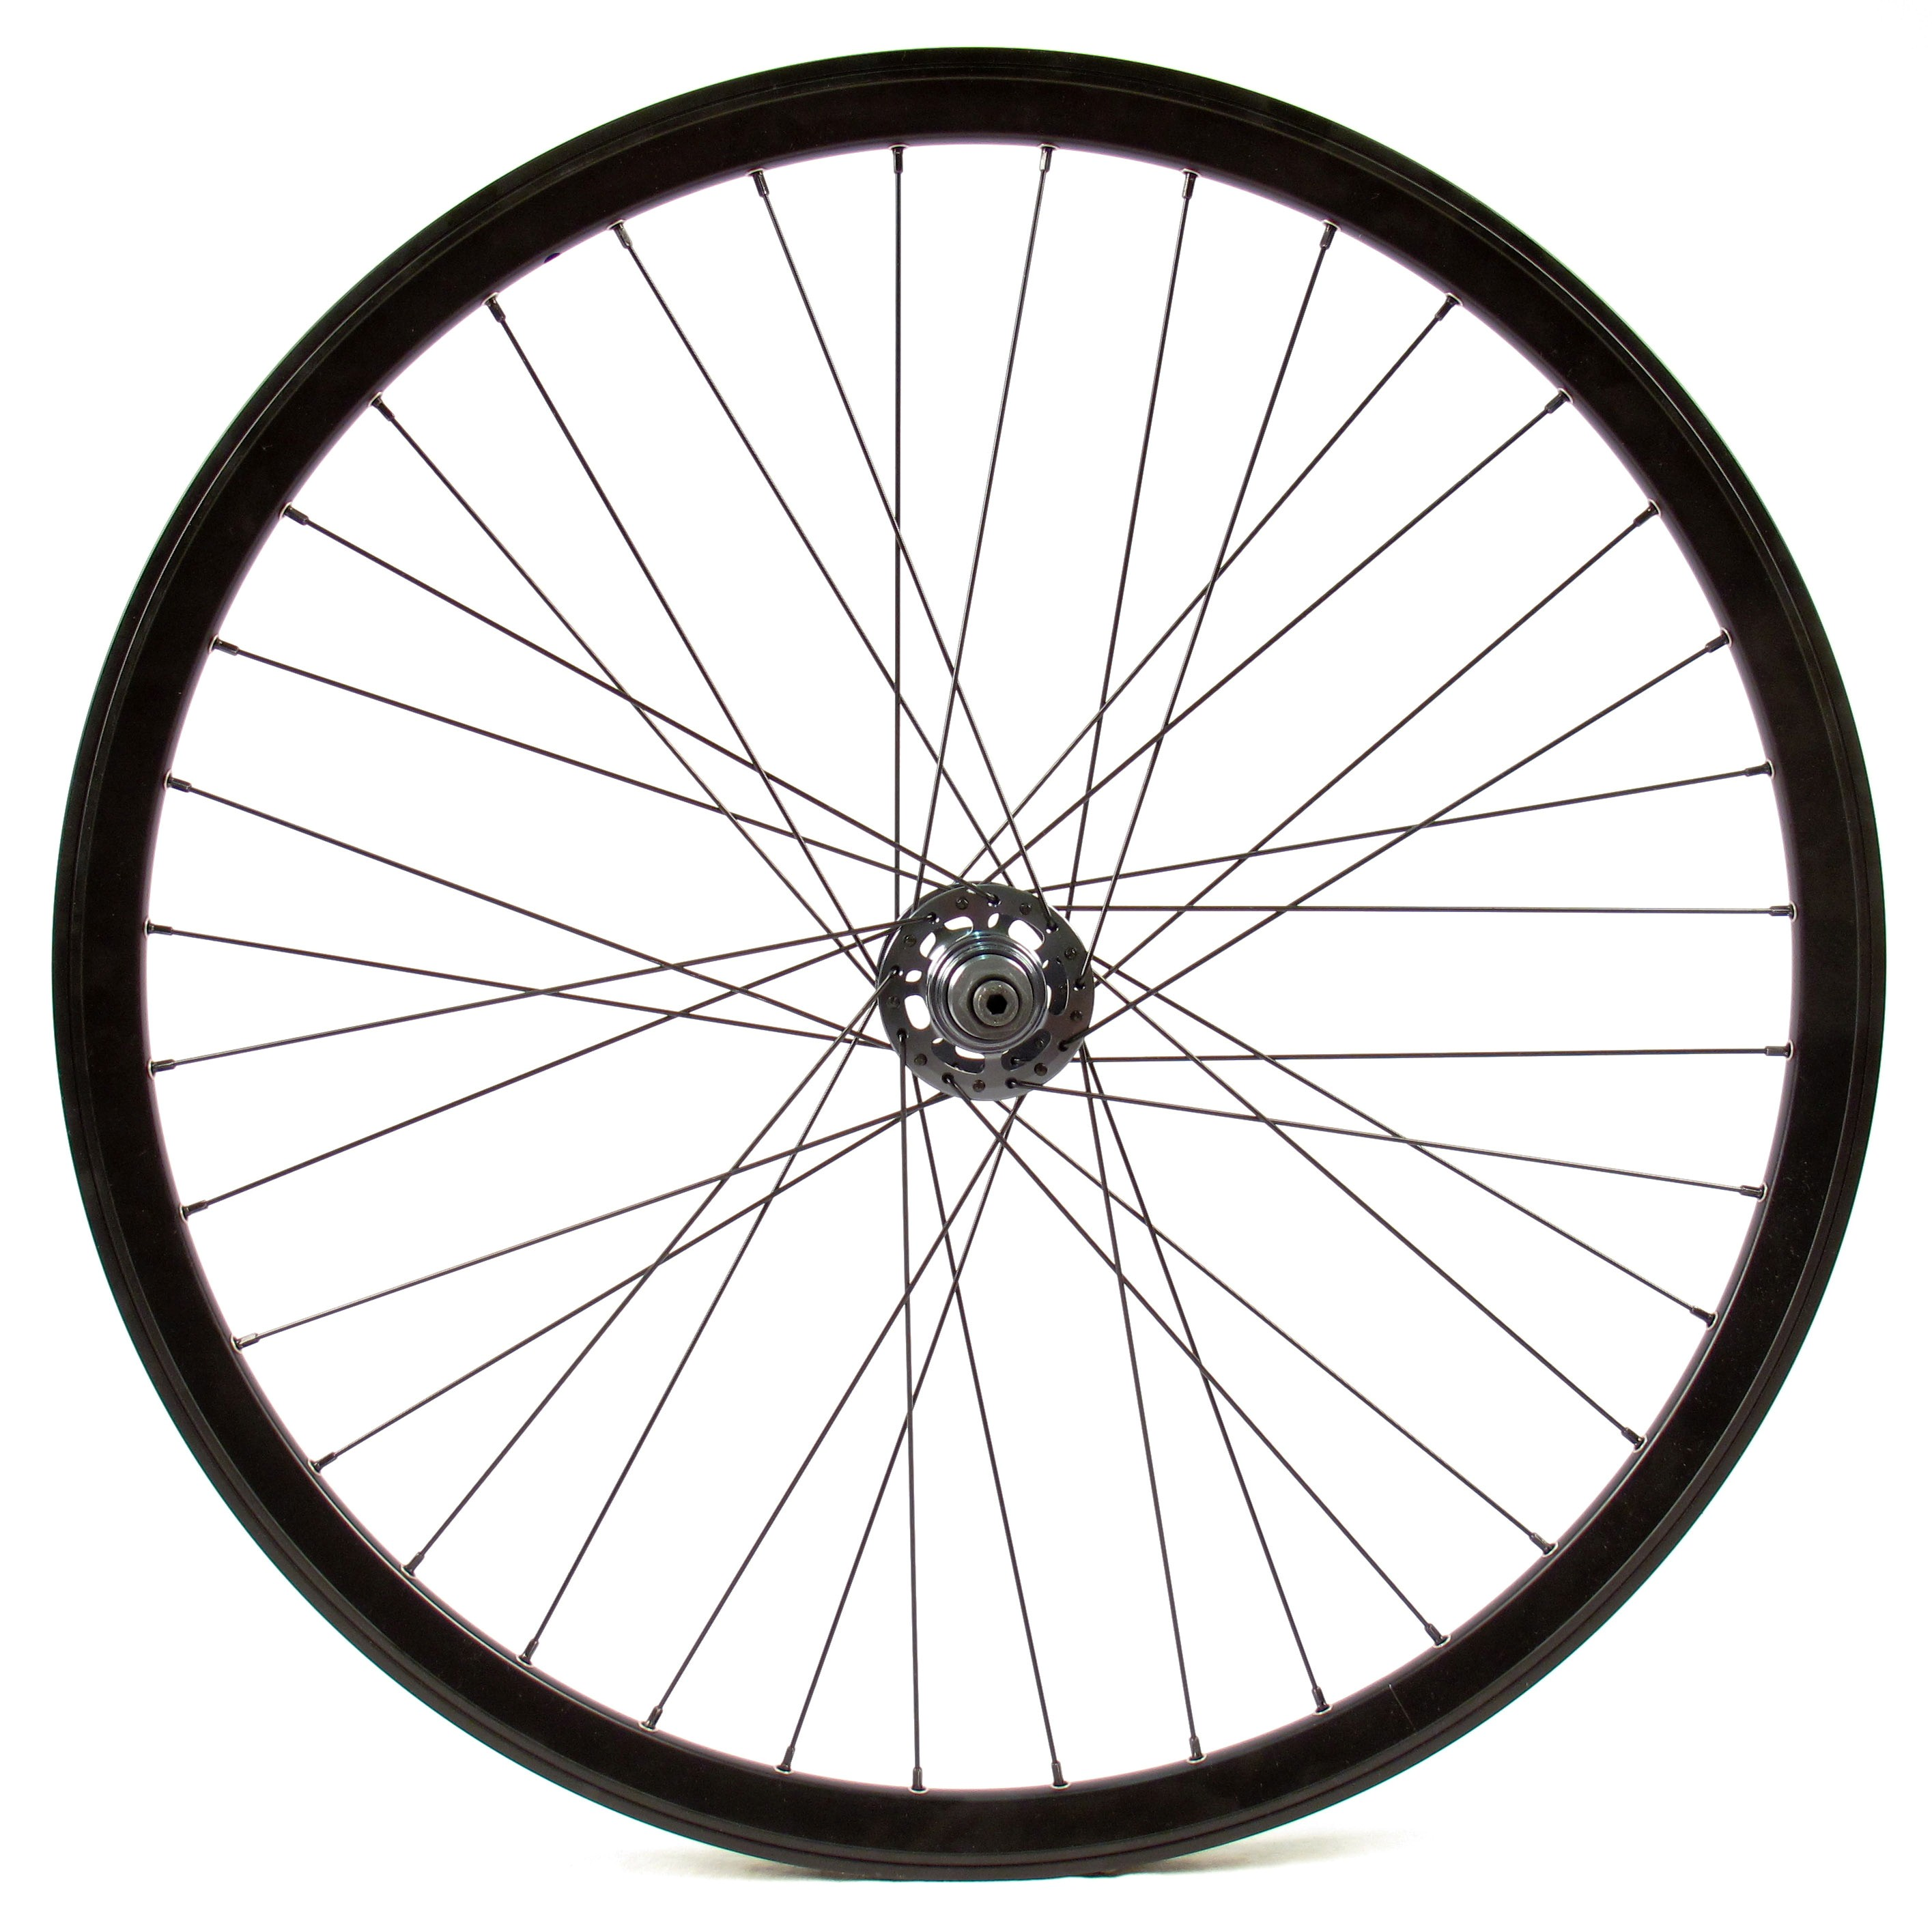 Free Motorcycle Wheel Cliparts, Download Free Clip Art, Free.